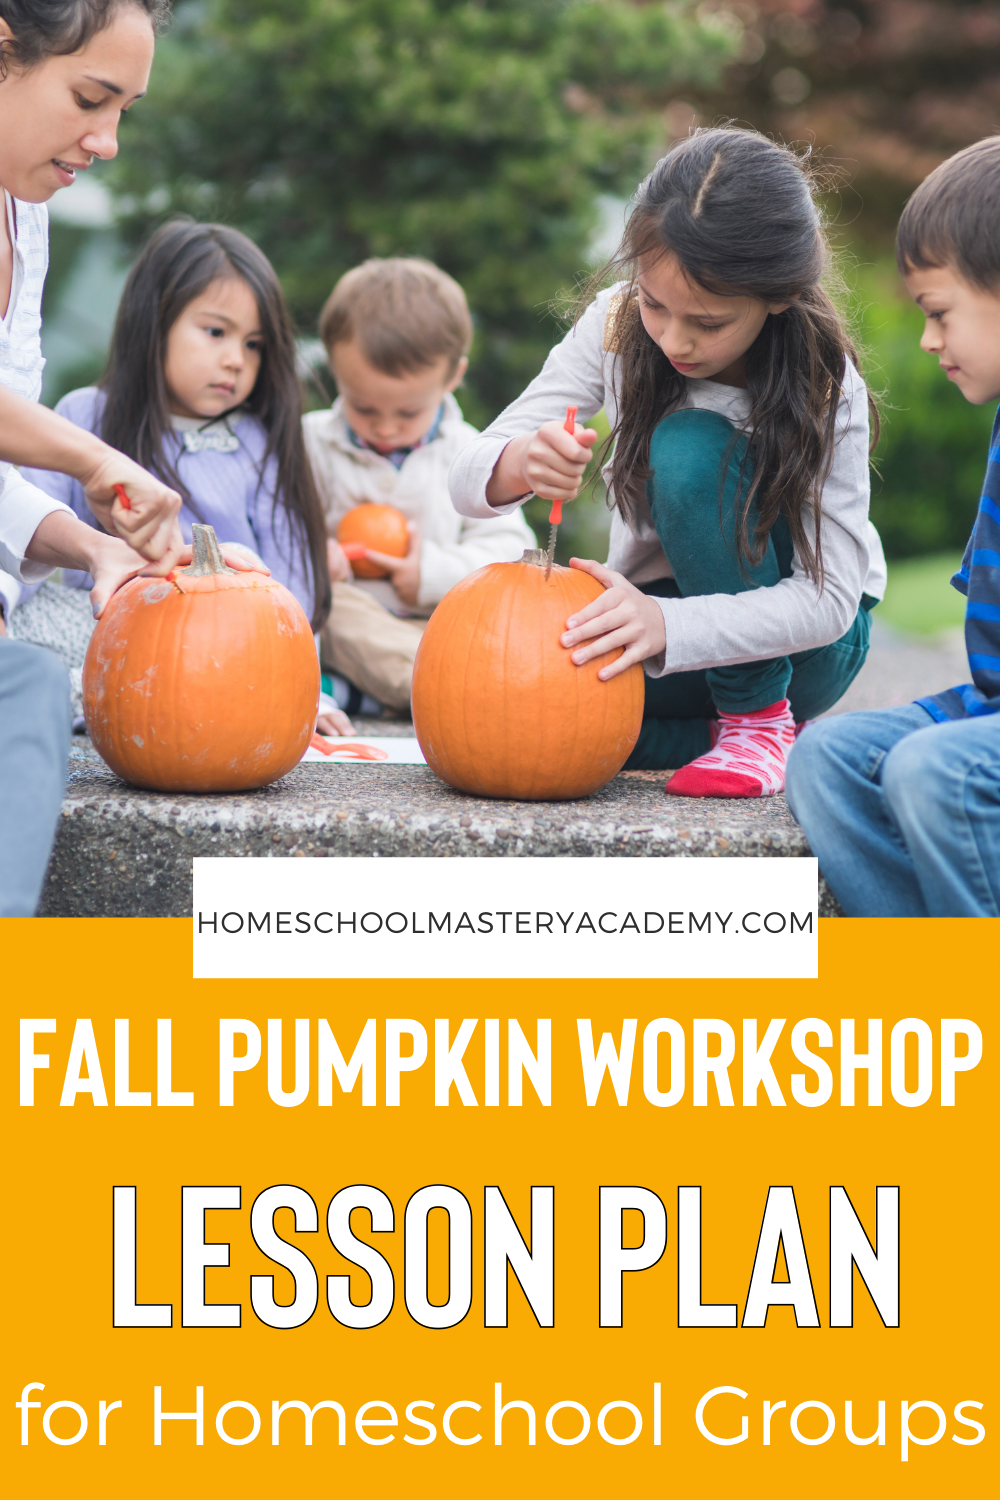 Pumpkin workshop lesson plan for homeschool groups! Enjoy this easy to follow lesson plan and workbook pack for grade K-3rd, perfect for homeschool groups! #pumpkins #homeschool #homeschoolgroup #homeschoolgroupactivities